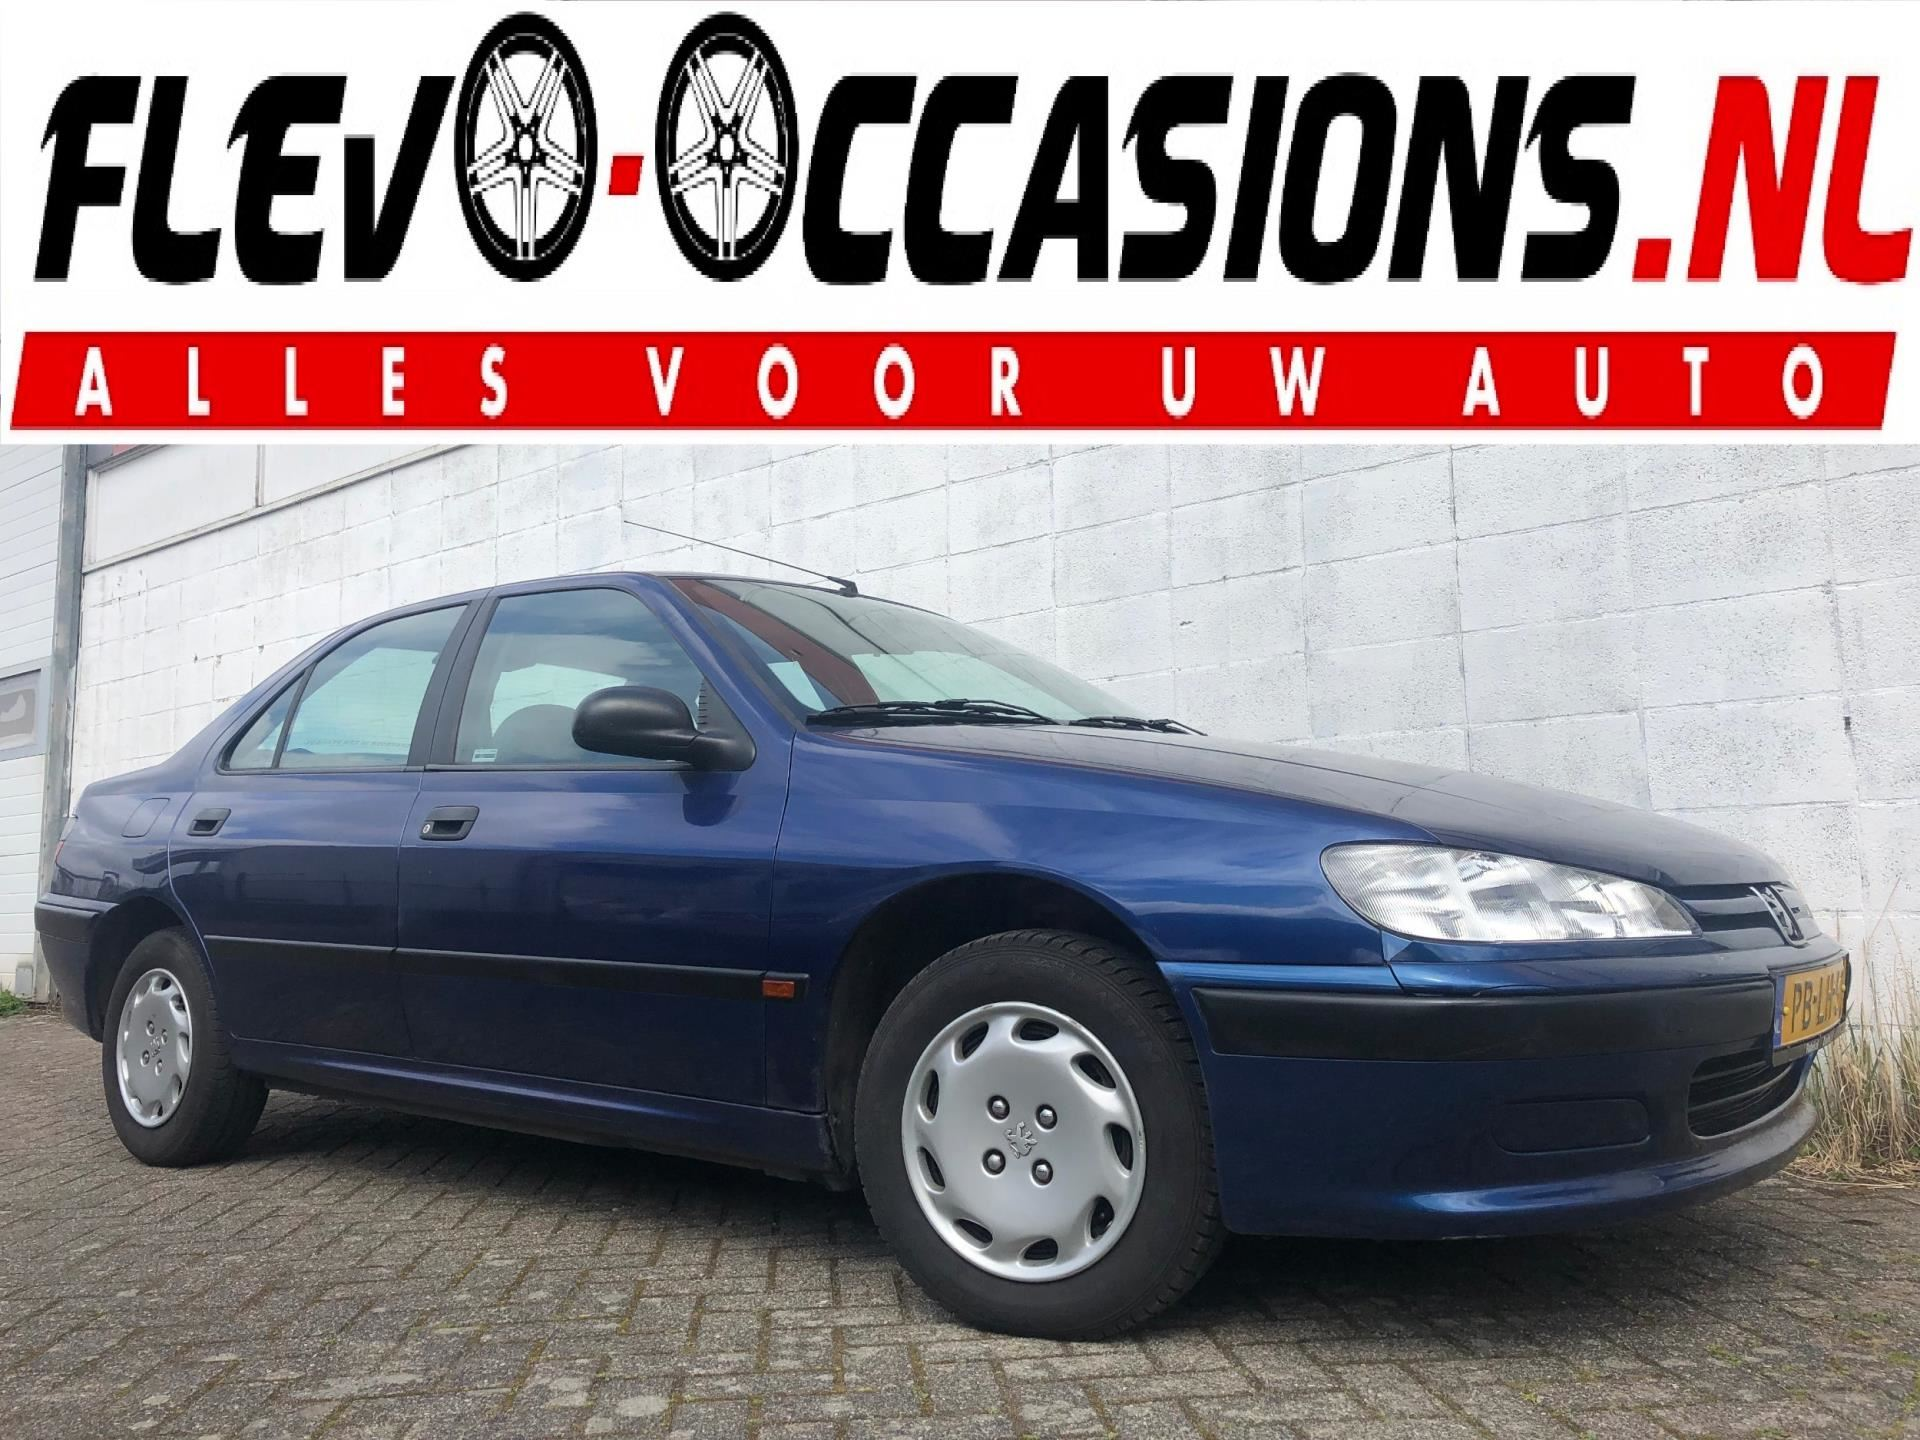 Peugeot 406 occasion - Flevo Occasions